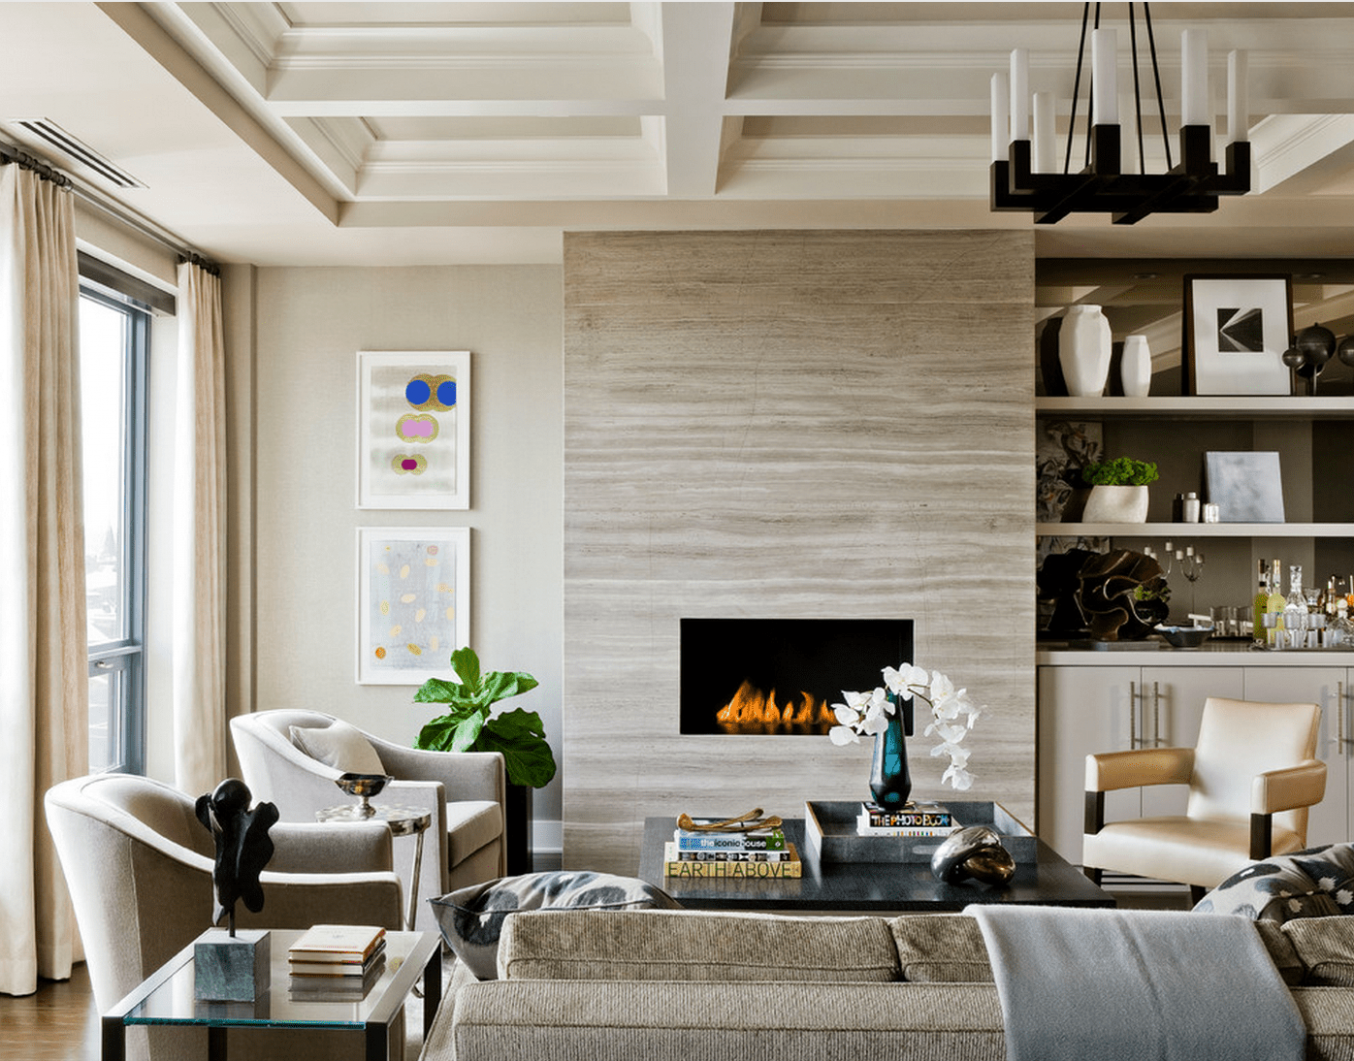 10 Beautiful Living Rooms With Fireplaces - living room ideas around fireplace